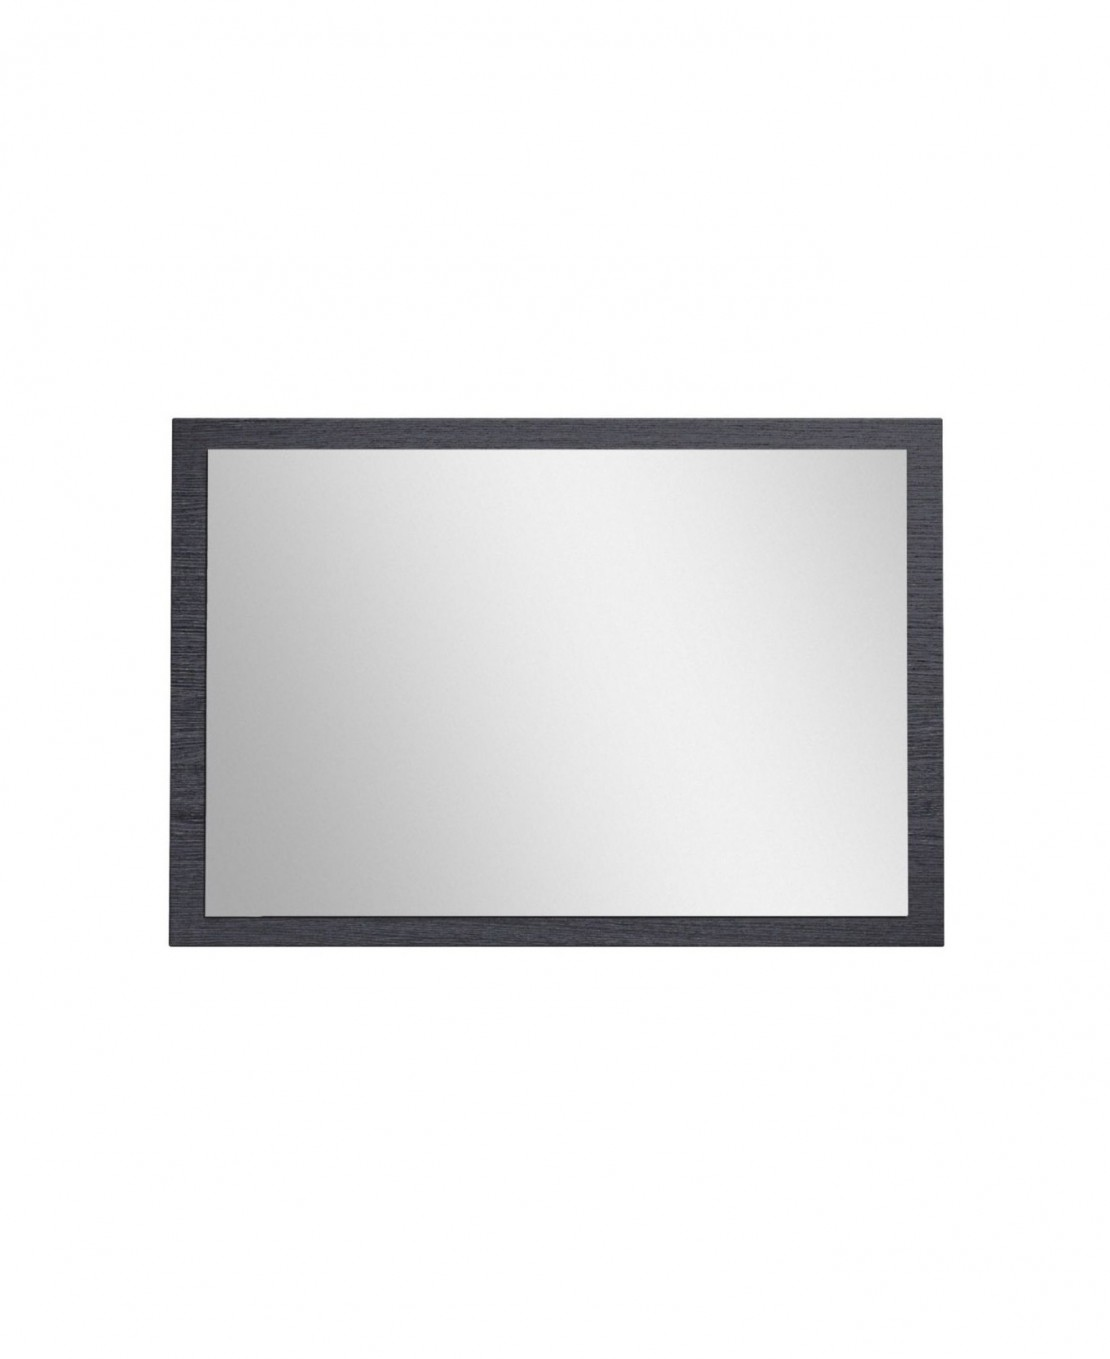 /_images/product-photos/kt-furniture-deco-mirror-black-oak-carcase-with-a.jpg